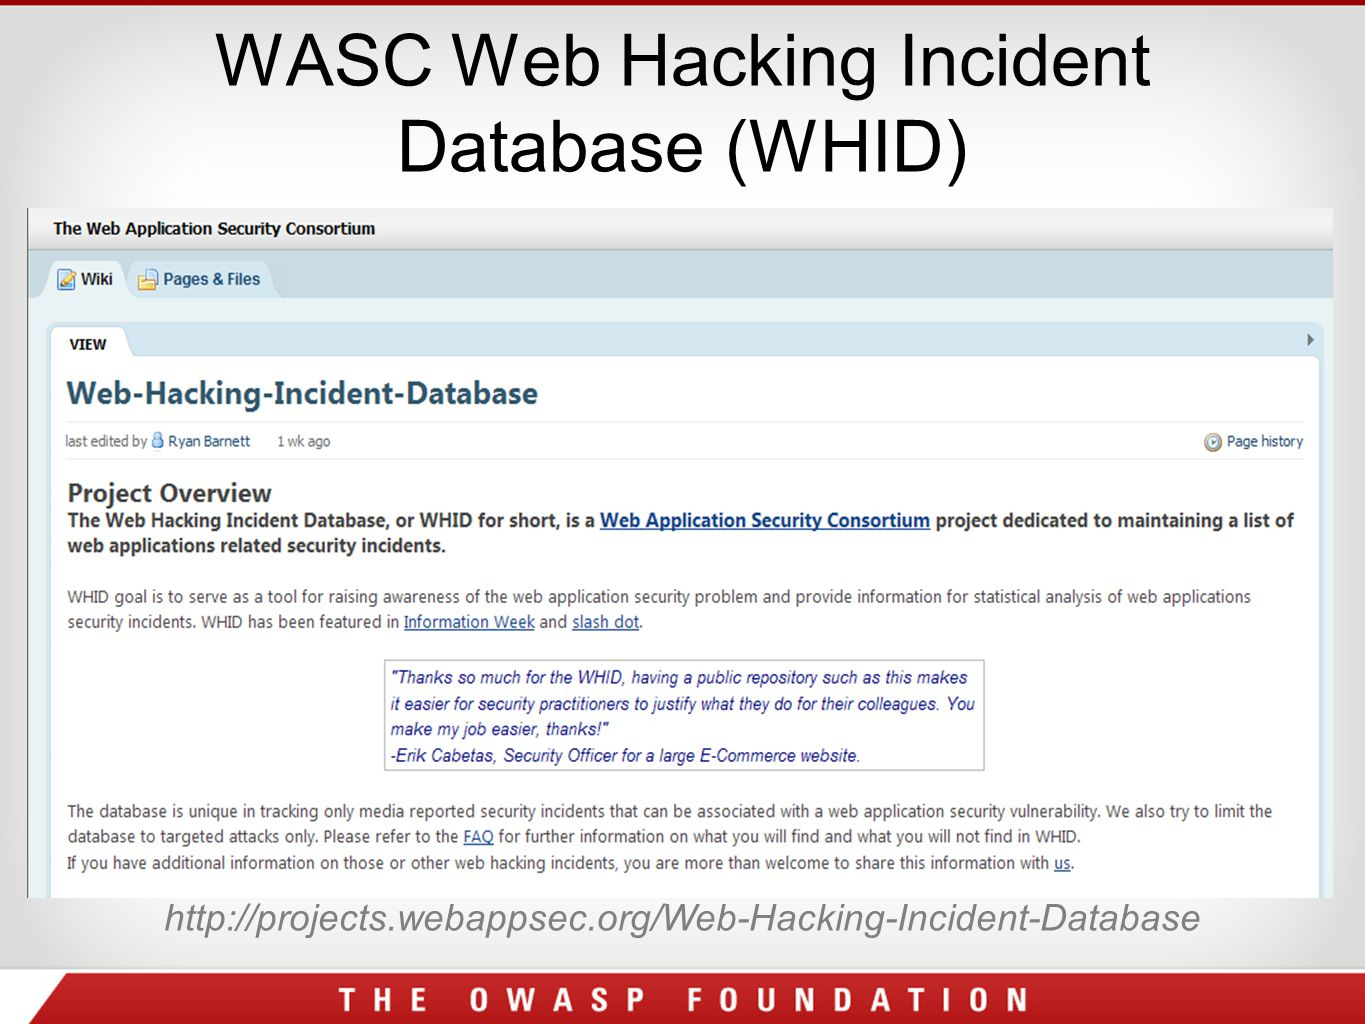 WASC Web Hacking Incident Database (WHID) http://projects.webappsec.org/Web-Hacking-Incident-Database